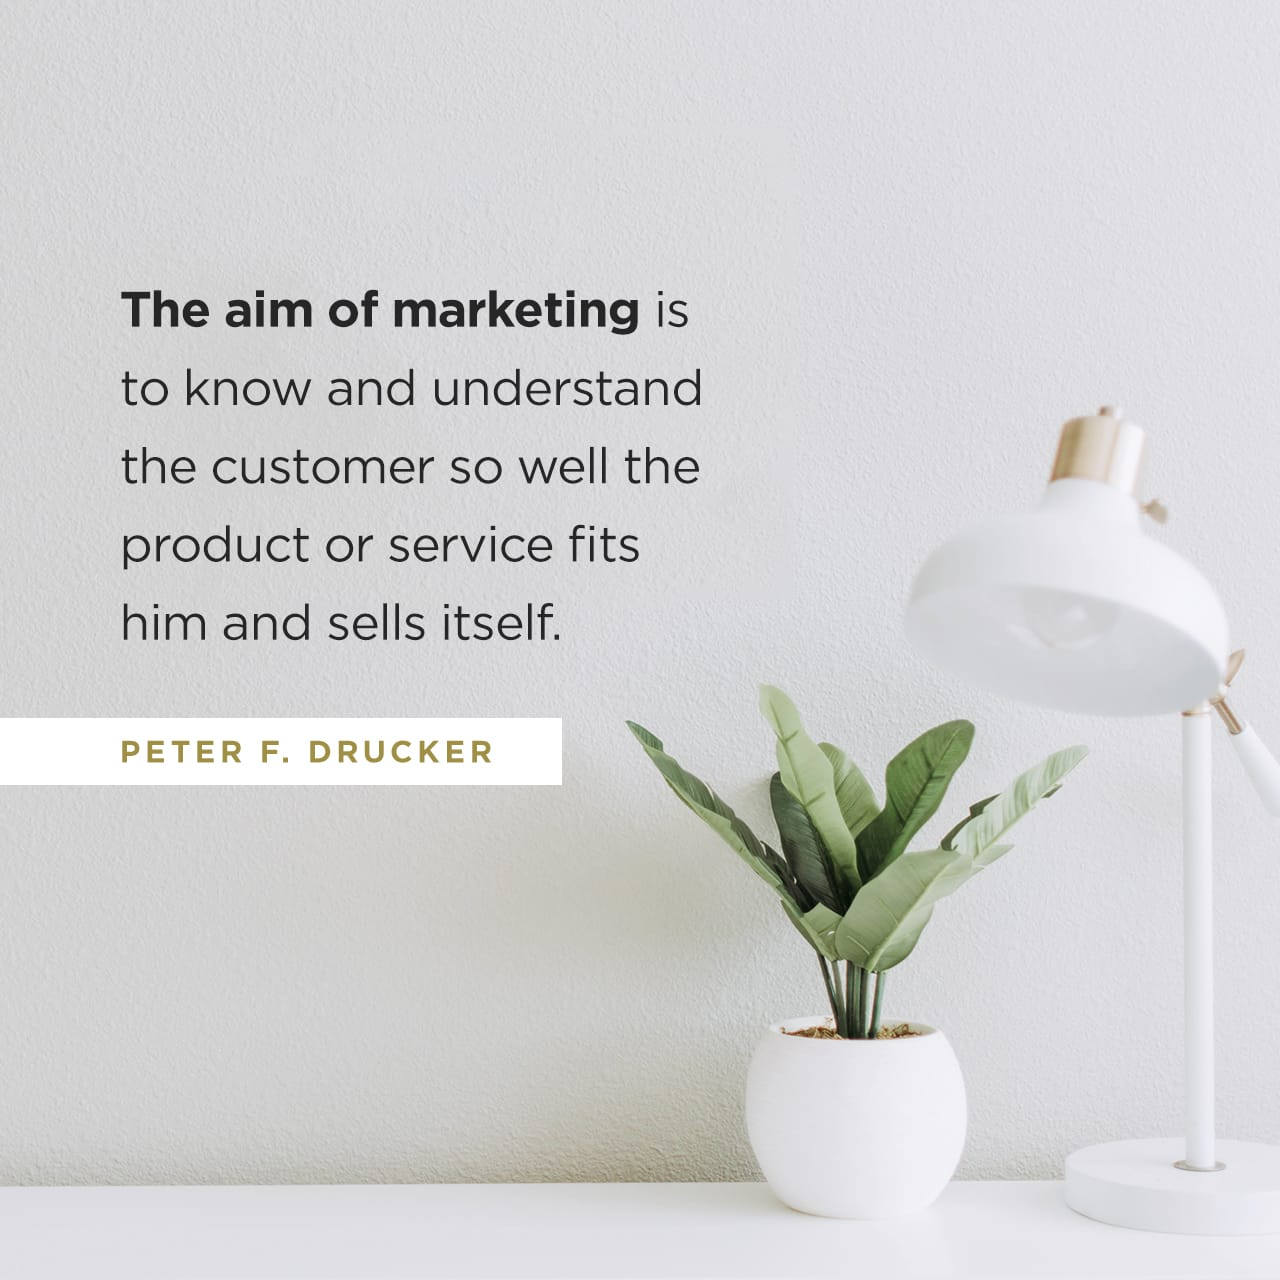 The aim of marketing is to know and understand the customer so well the product or service fits him and sells itself - Peter Drucker